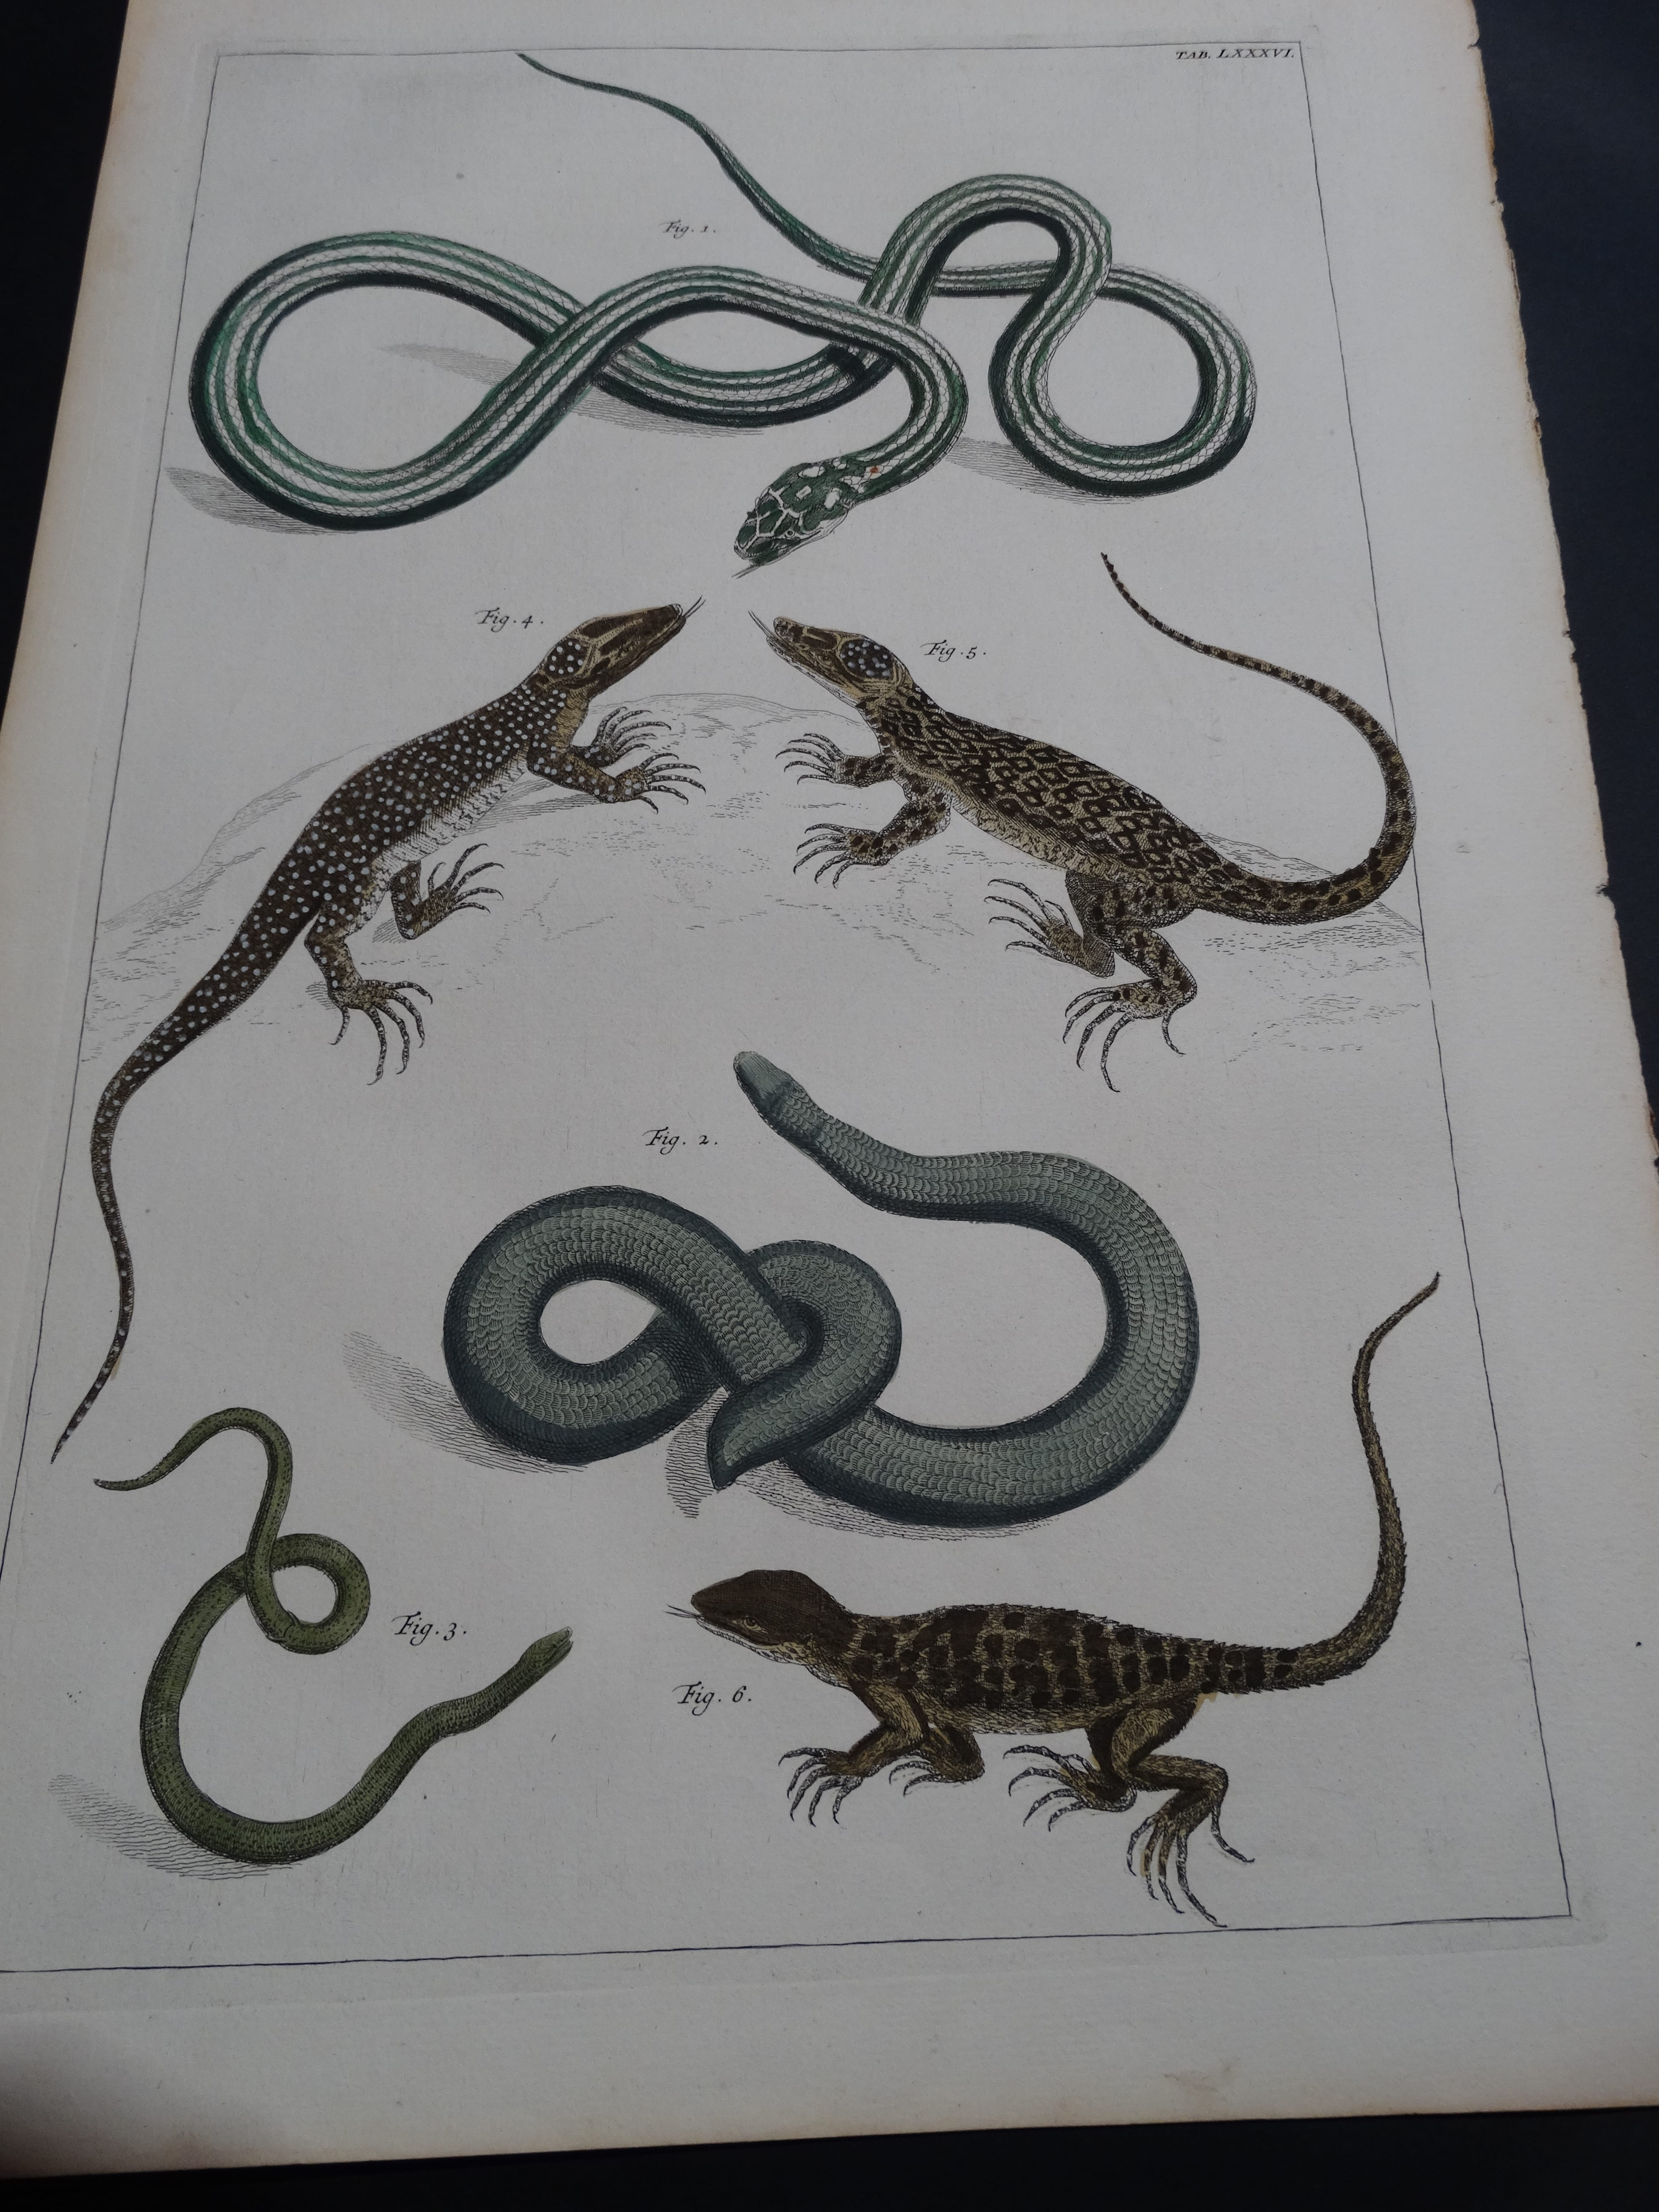 Albertus Seba Lizards and Snakes Pl. LXXXVI